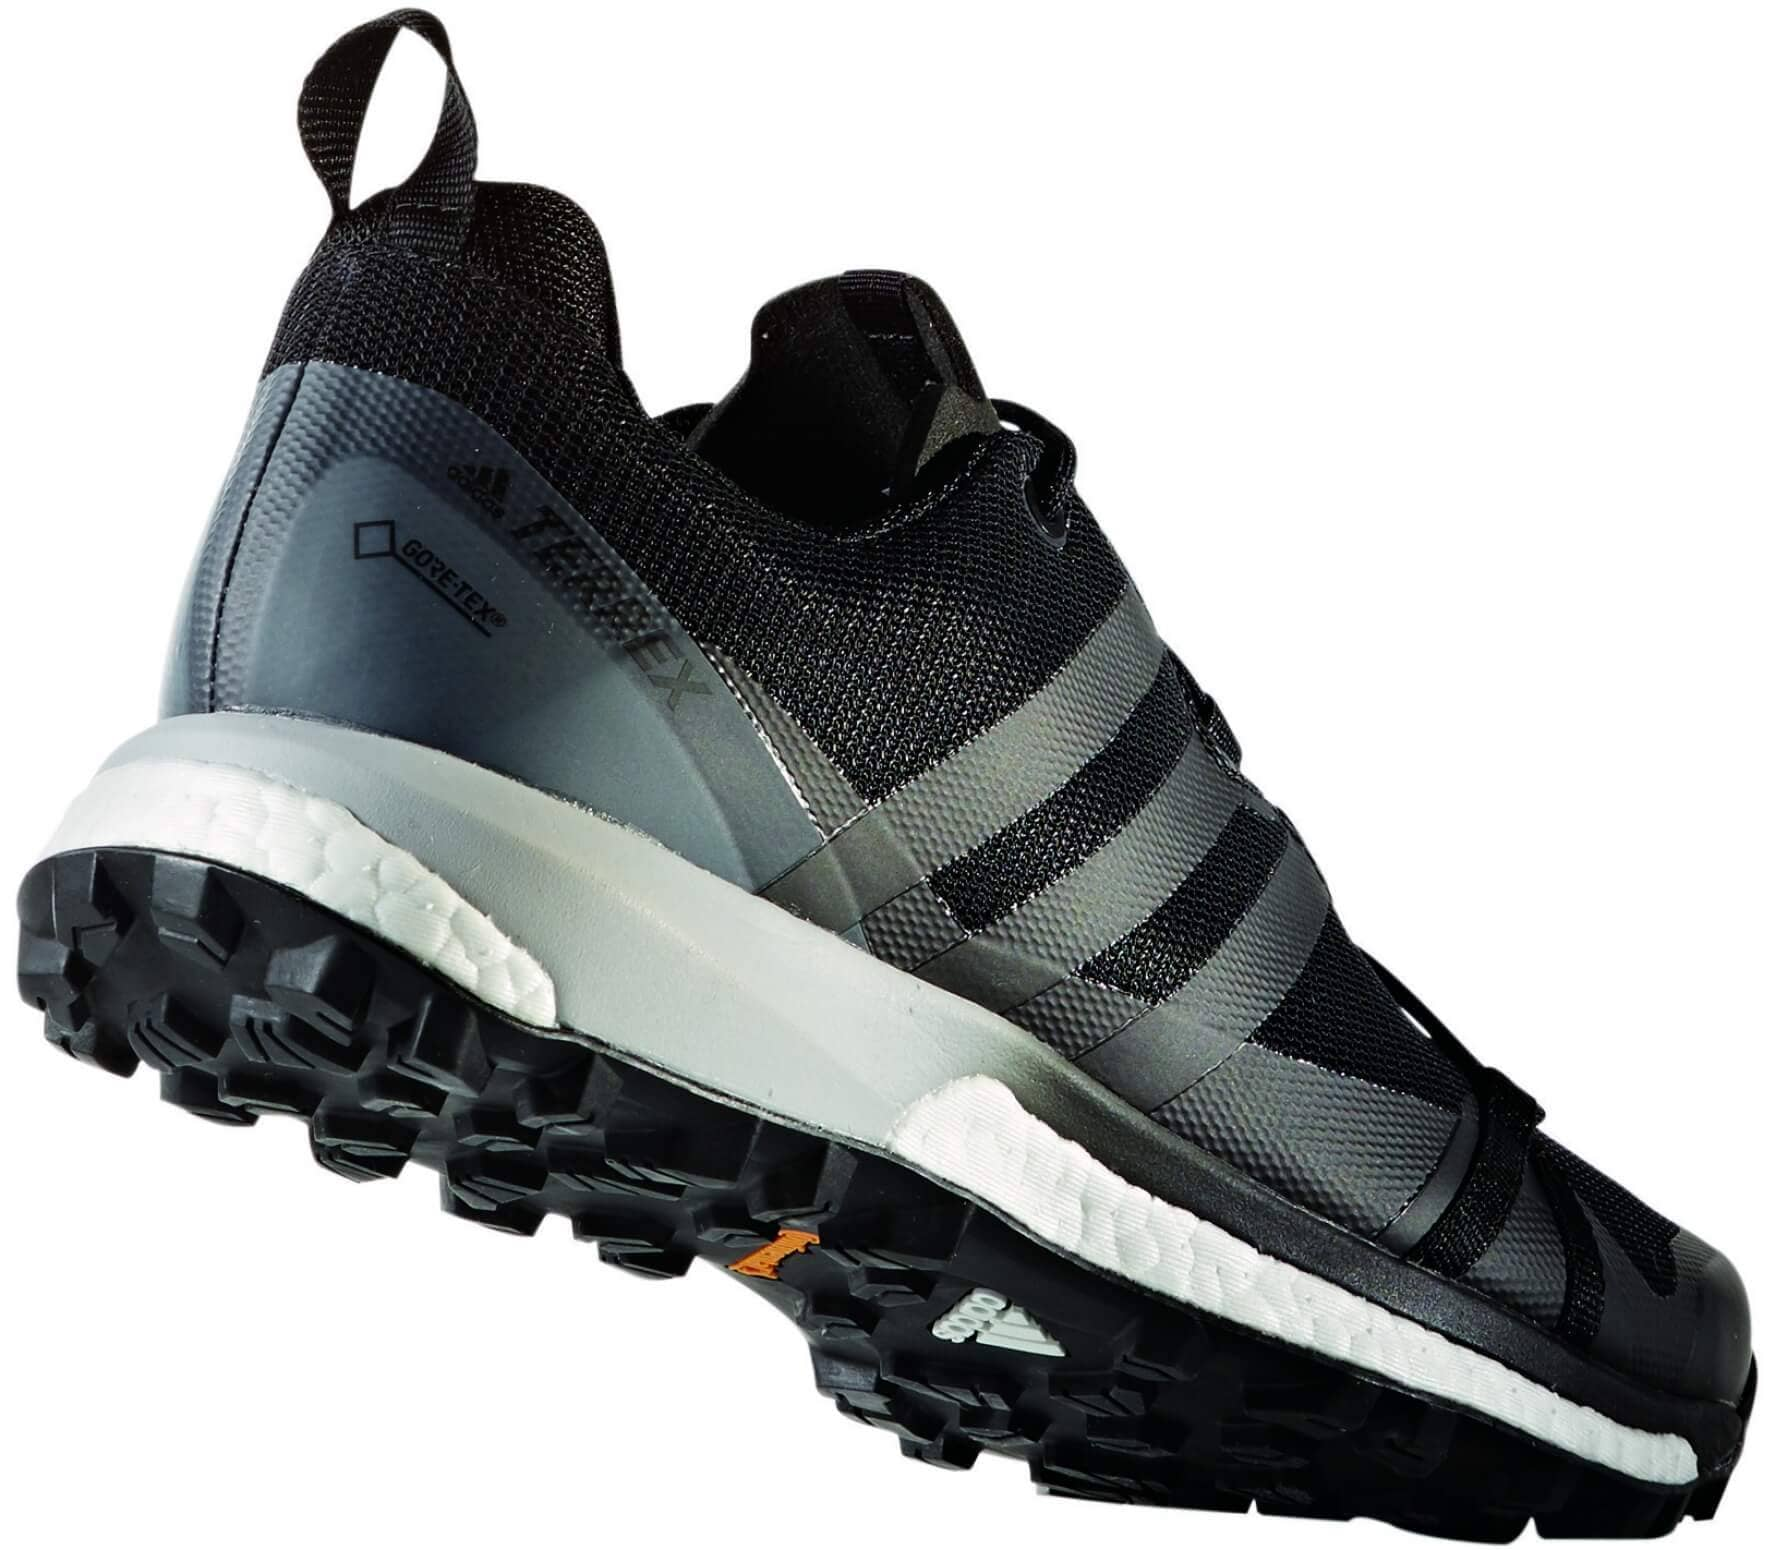 premium selection 7d069 a8119 Adidas - Terrex Agravic GTX men s Mountain running shoes (black grey)